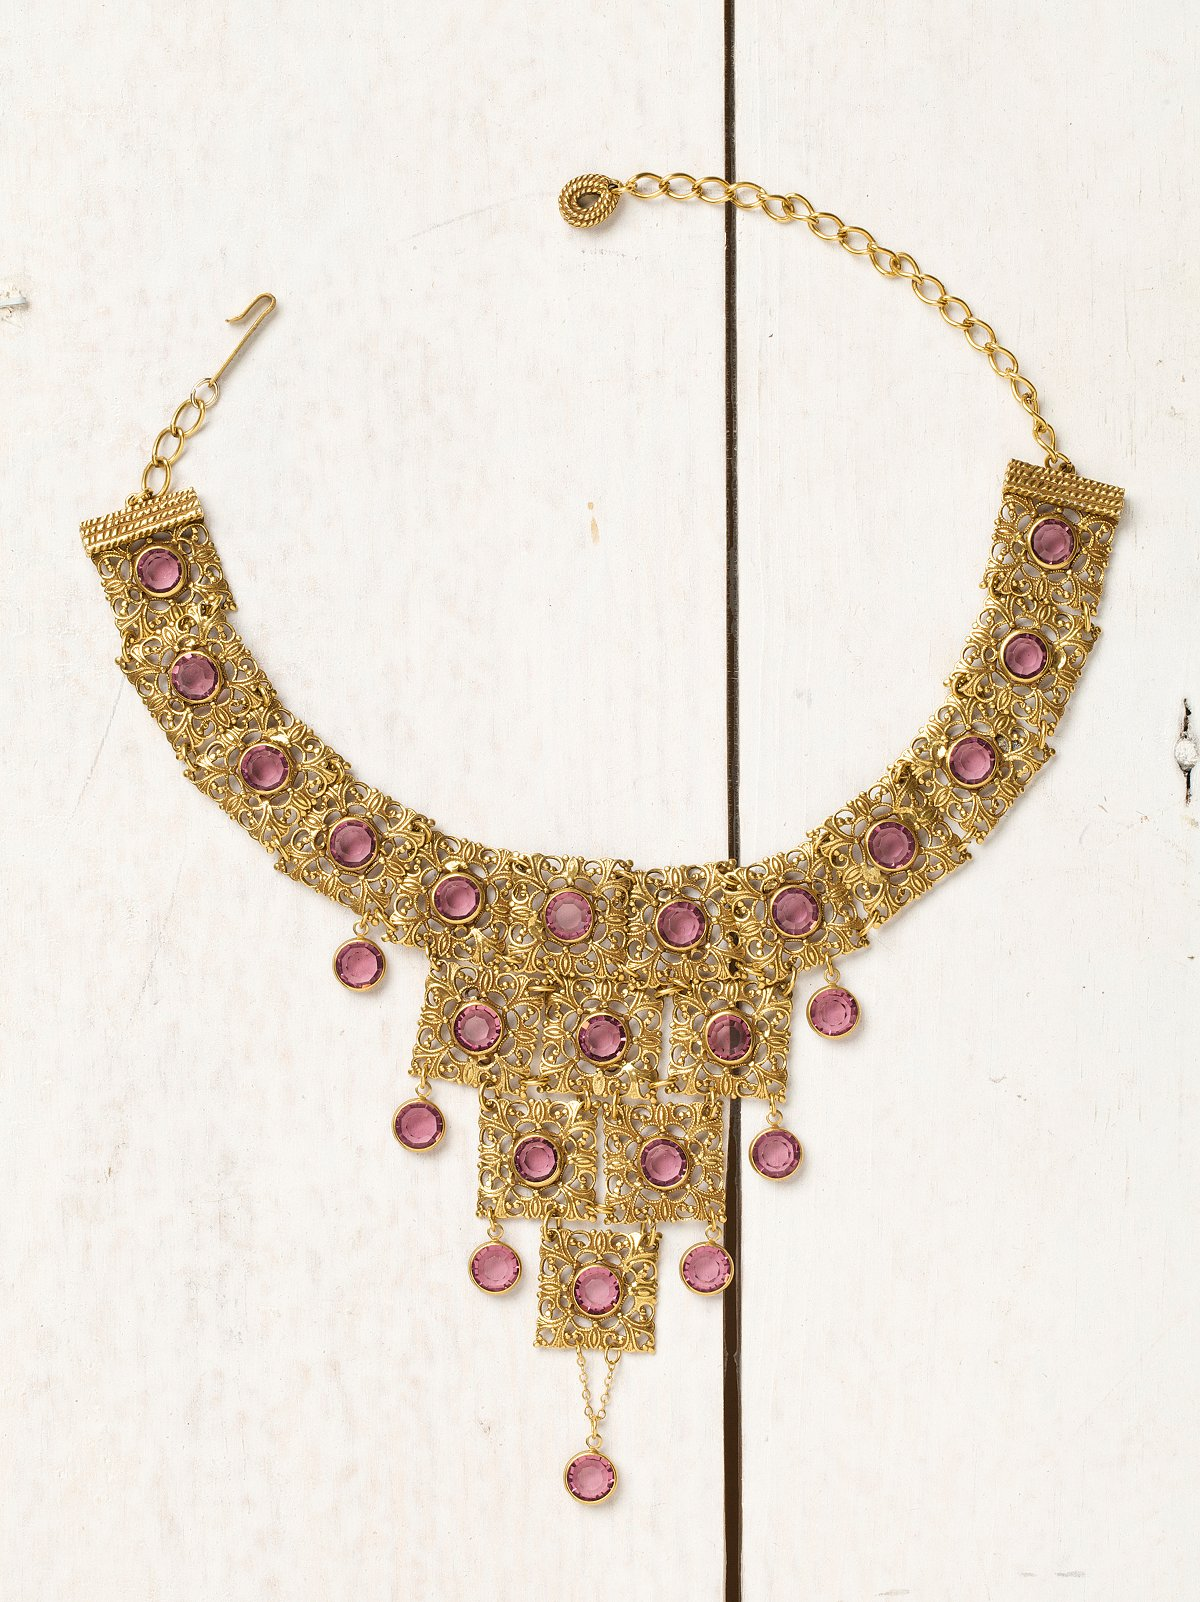 Vintage 1960s Goldette Bib Necklace